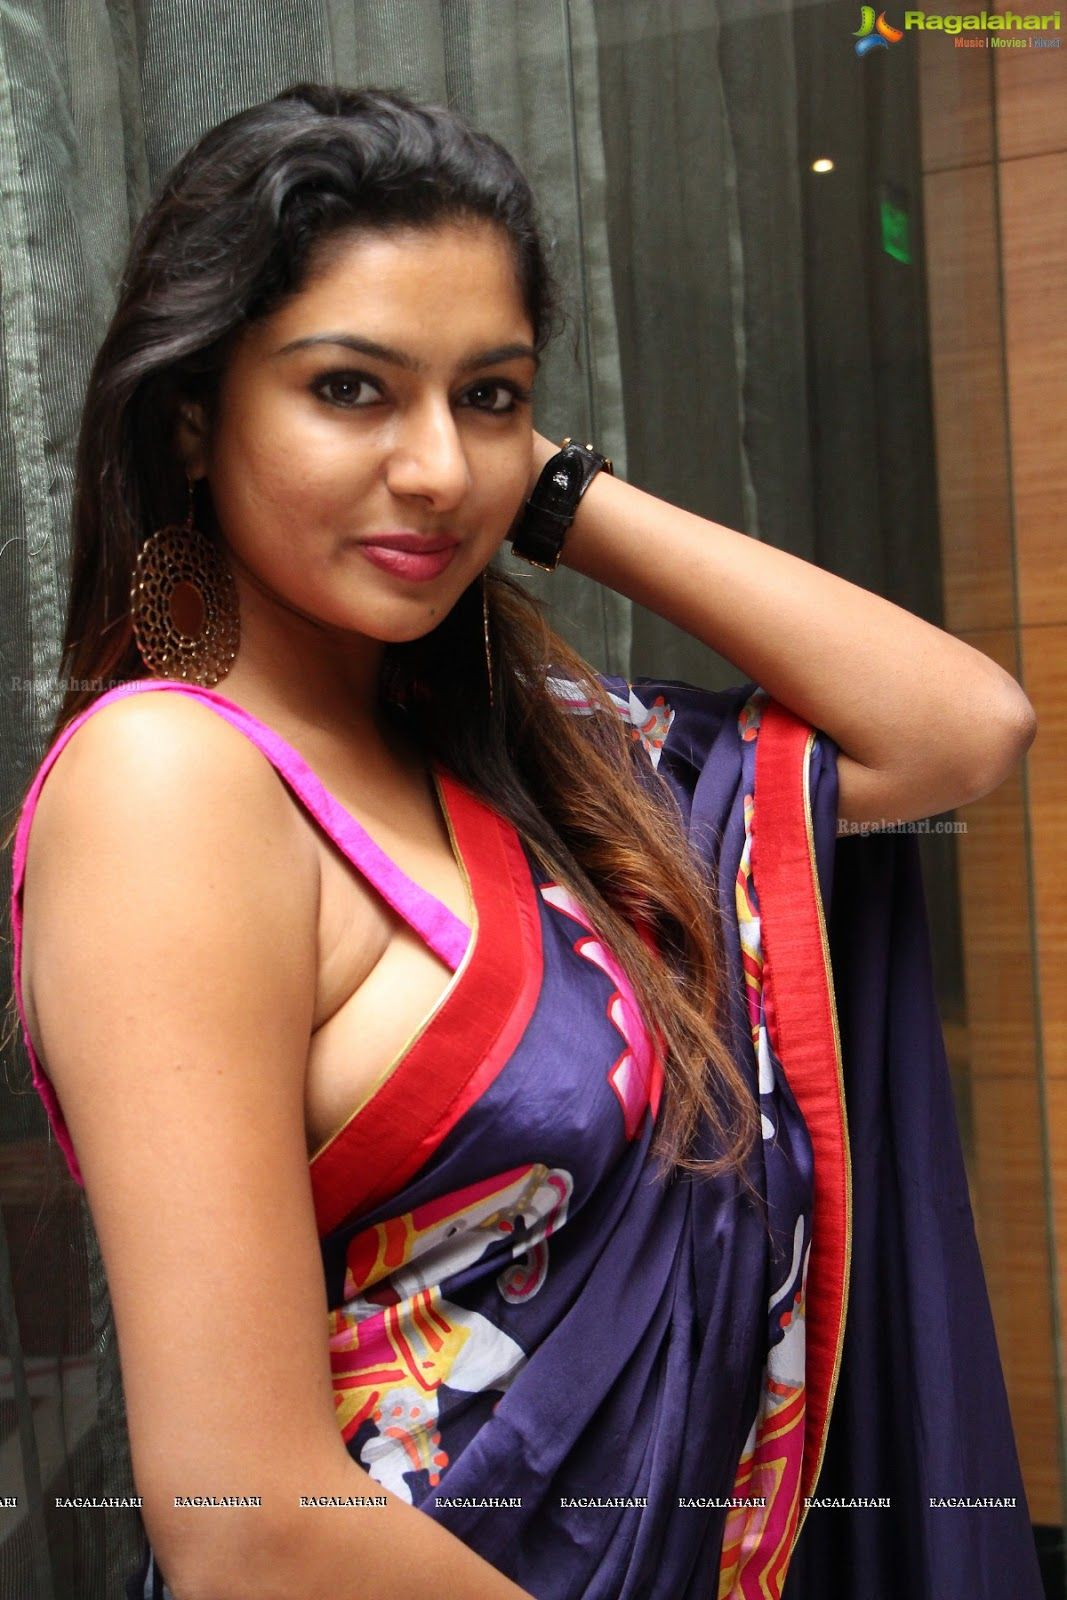 armpit actress photo: akshatha spicy armpit show without bra side